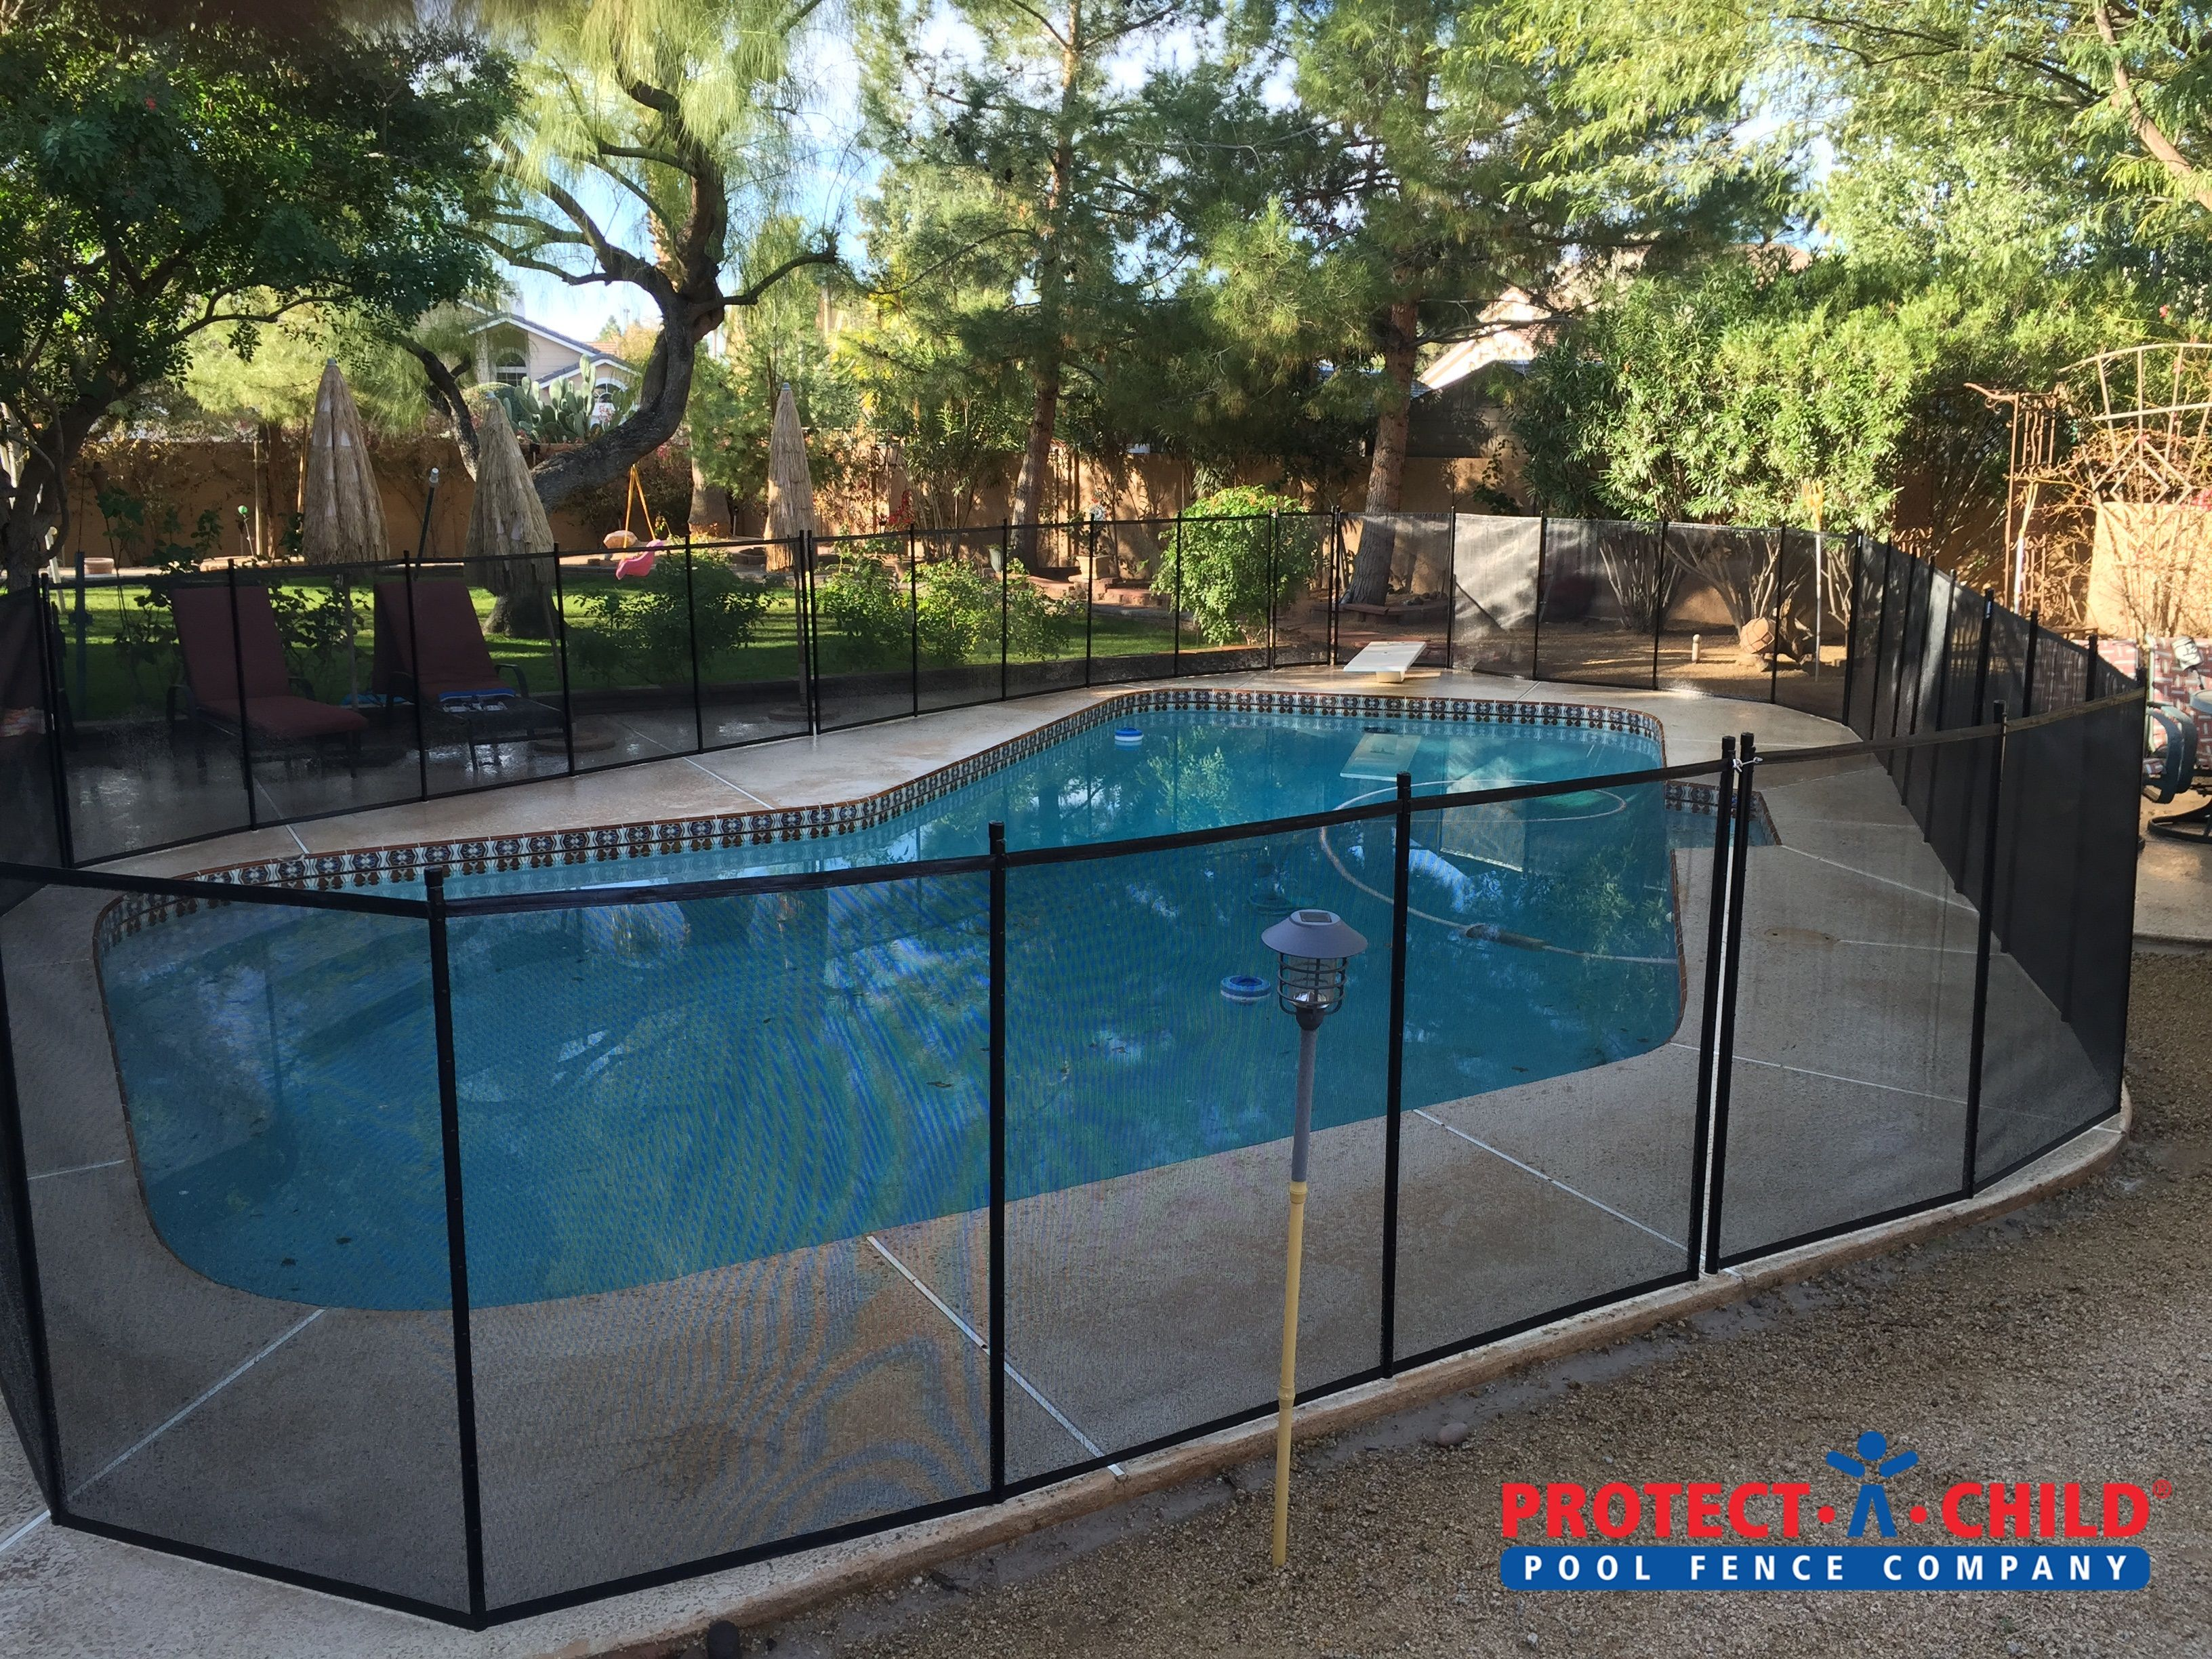 Pool Safety Fence Reviews Drowning Prevention